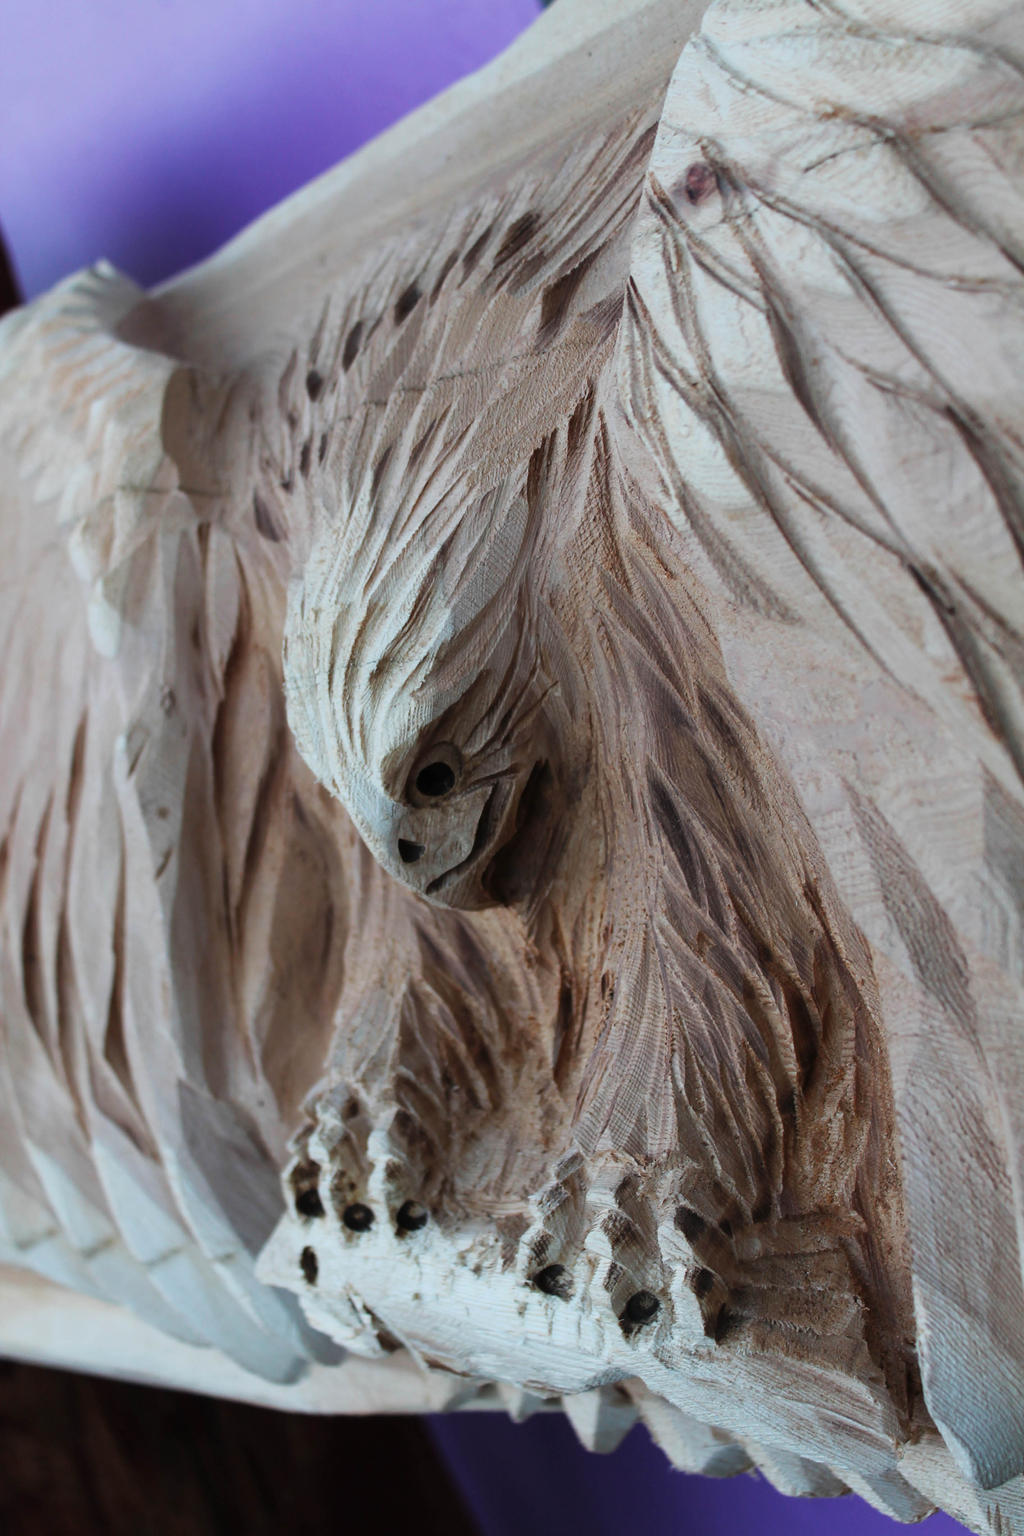 Eagle chainsaw carving upclose by m carvings on